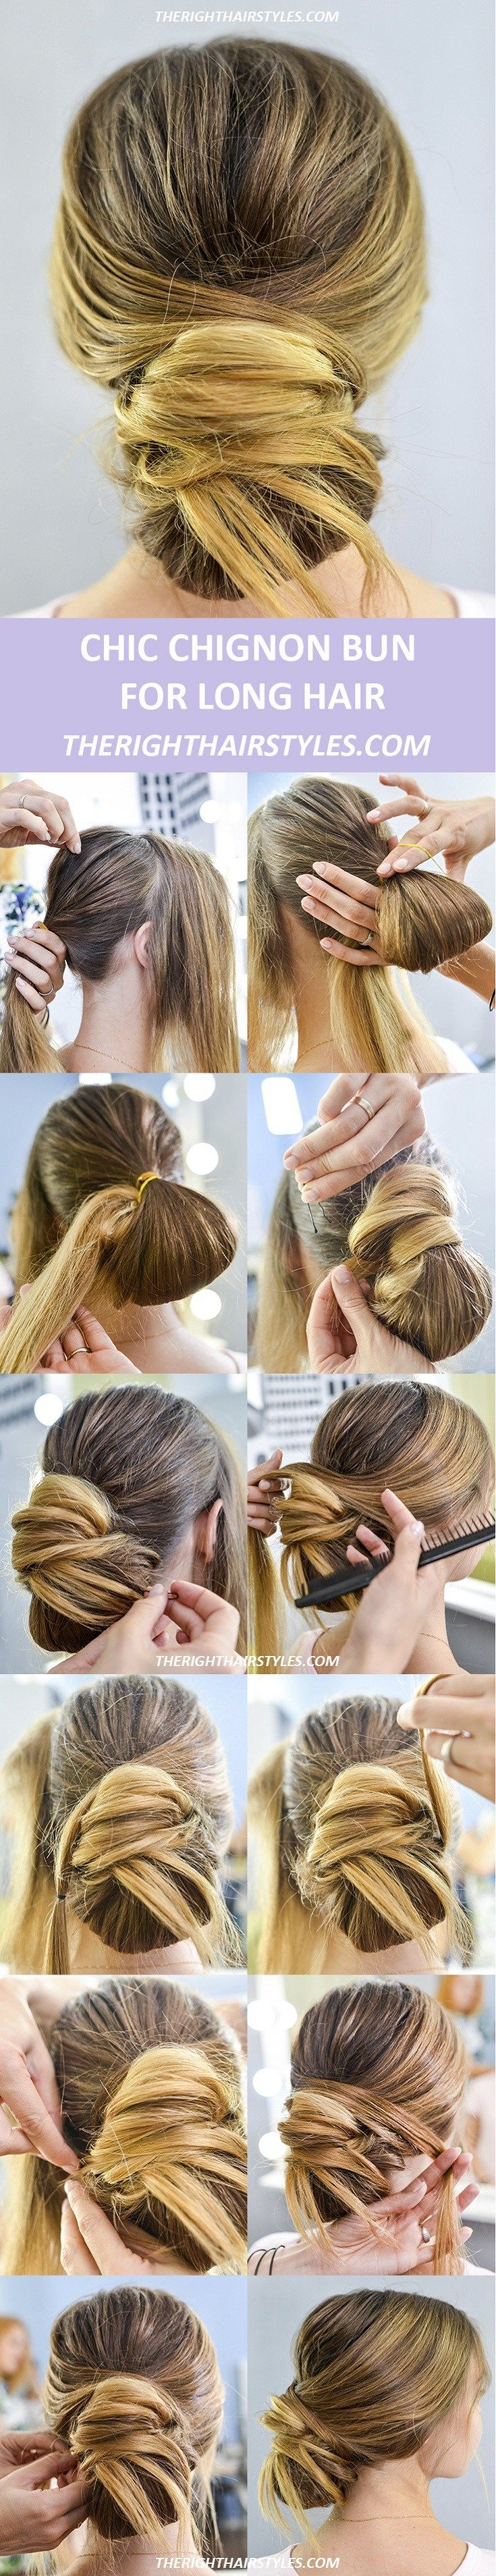 Now Make a Chic Chignon in Easy Steps 2018